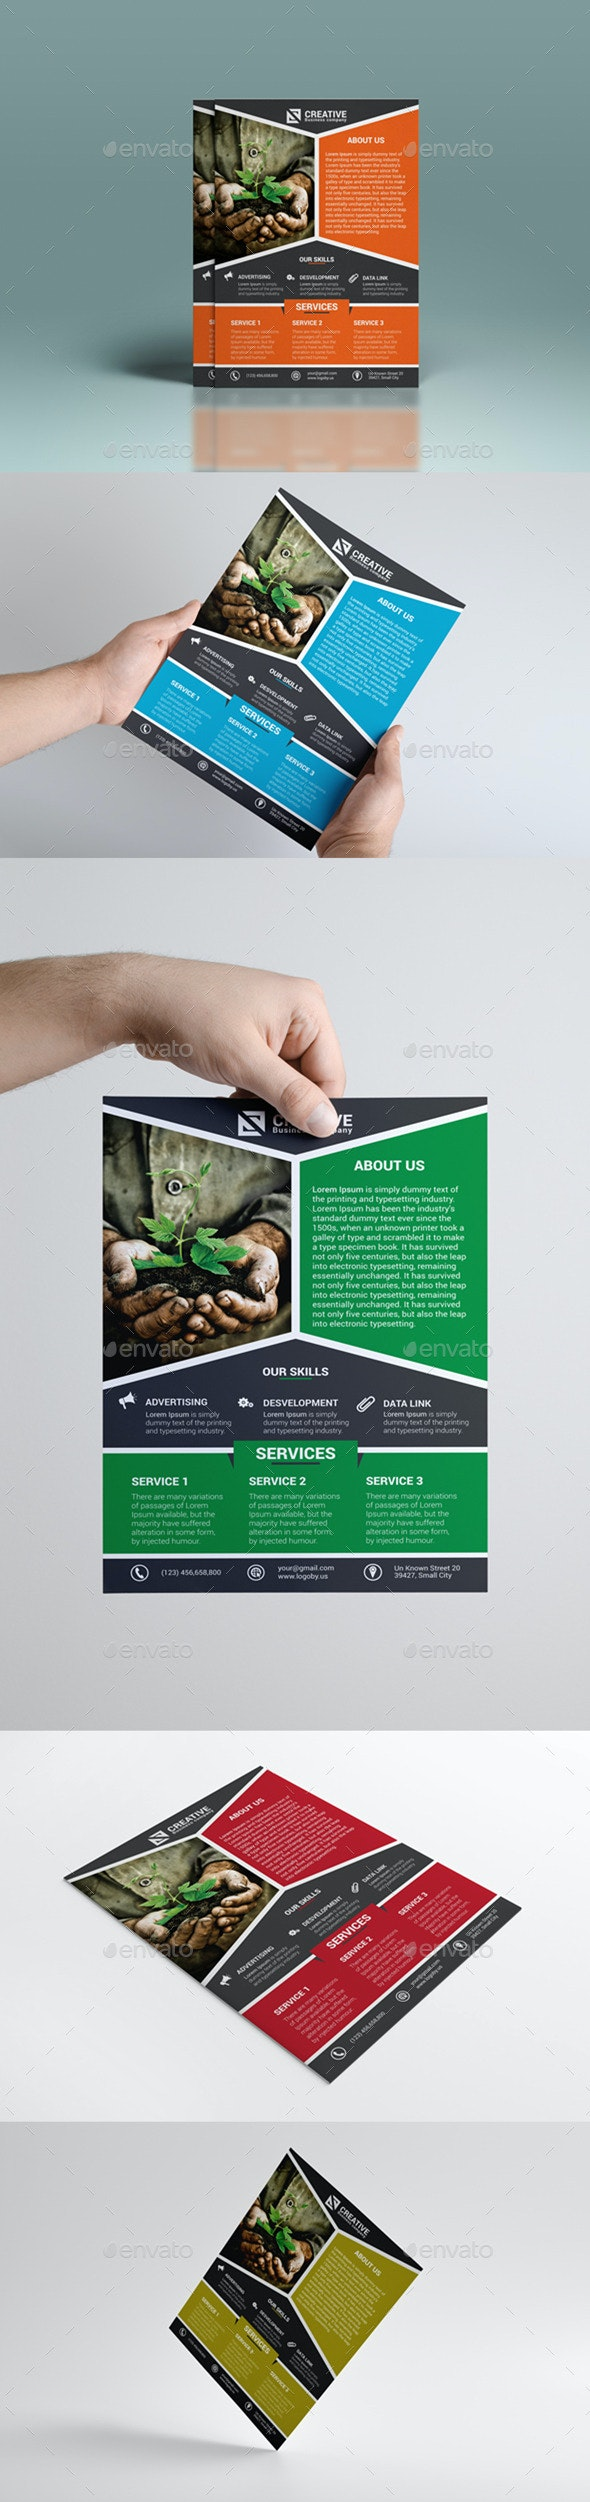 Corporate Business Flyer Vol 1 - Corporate Flyers